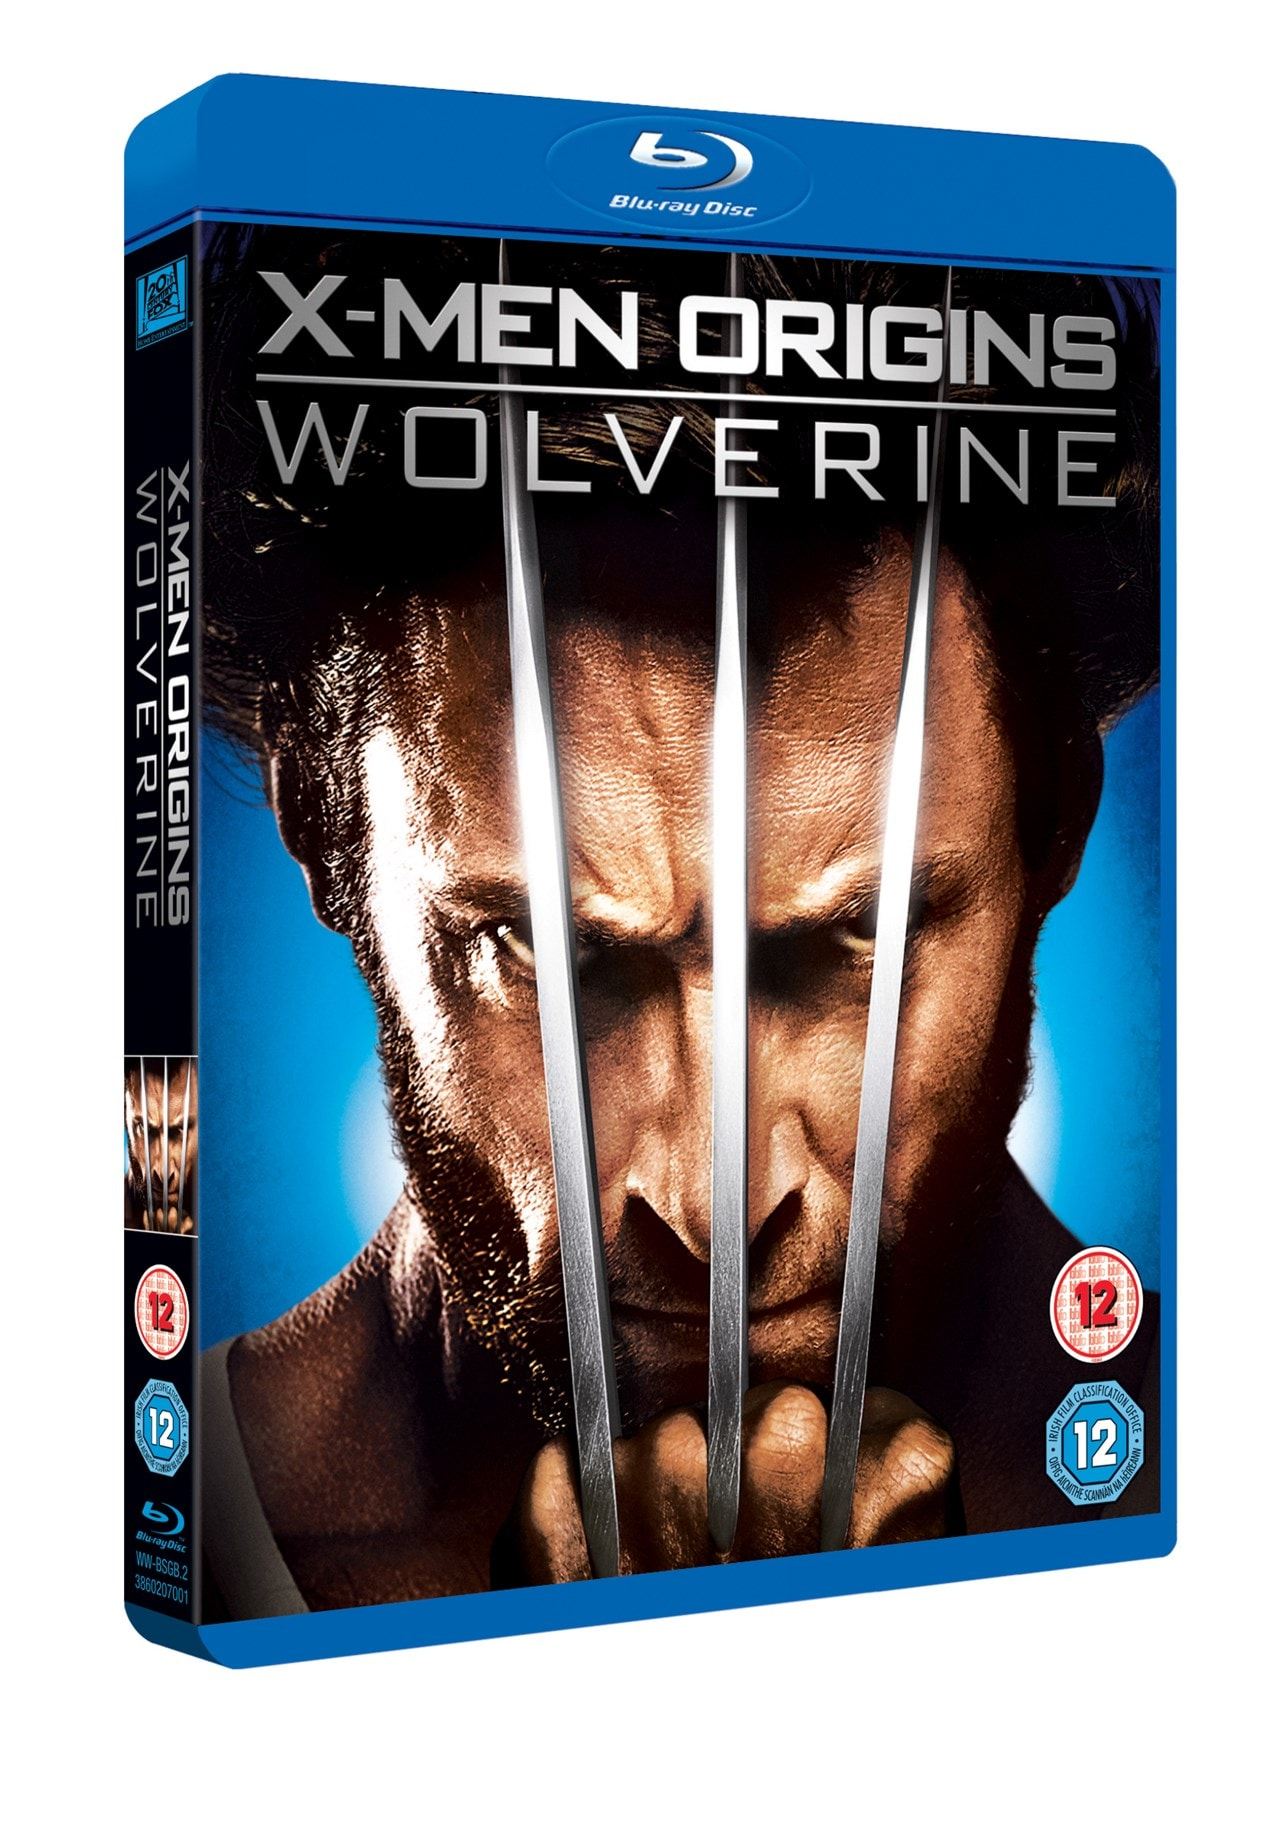 X-Men Origins - Wolverine - 2